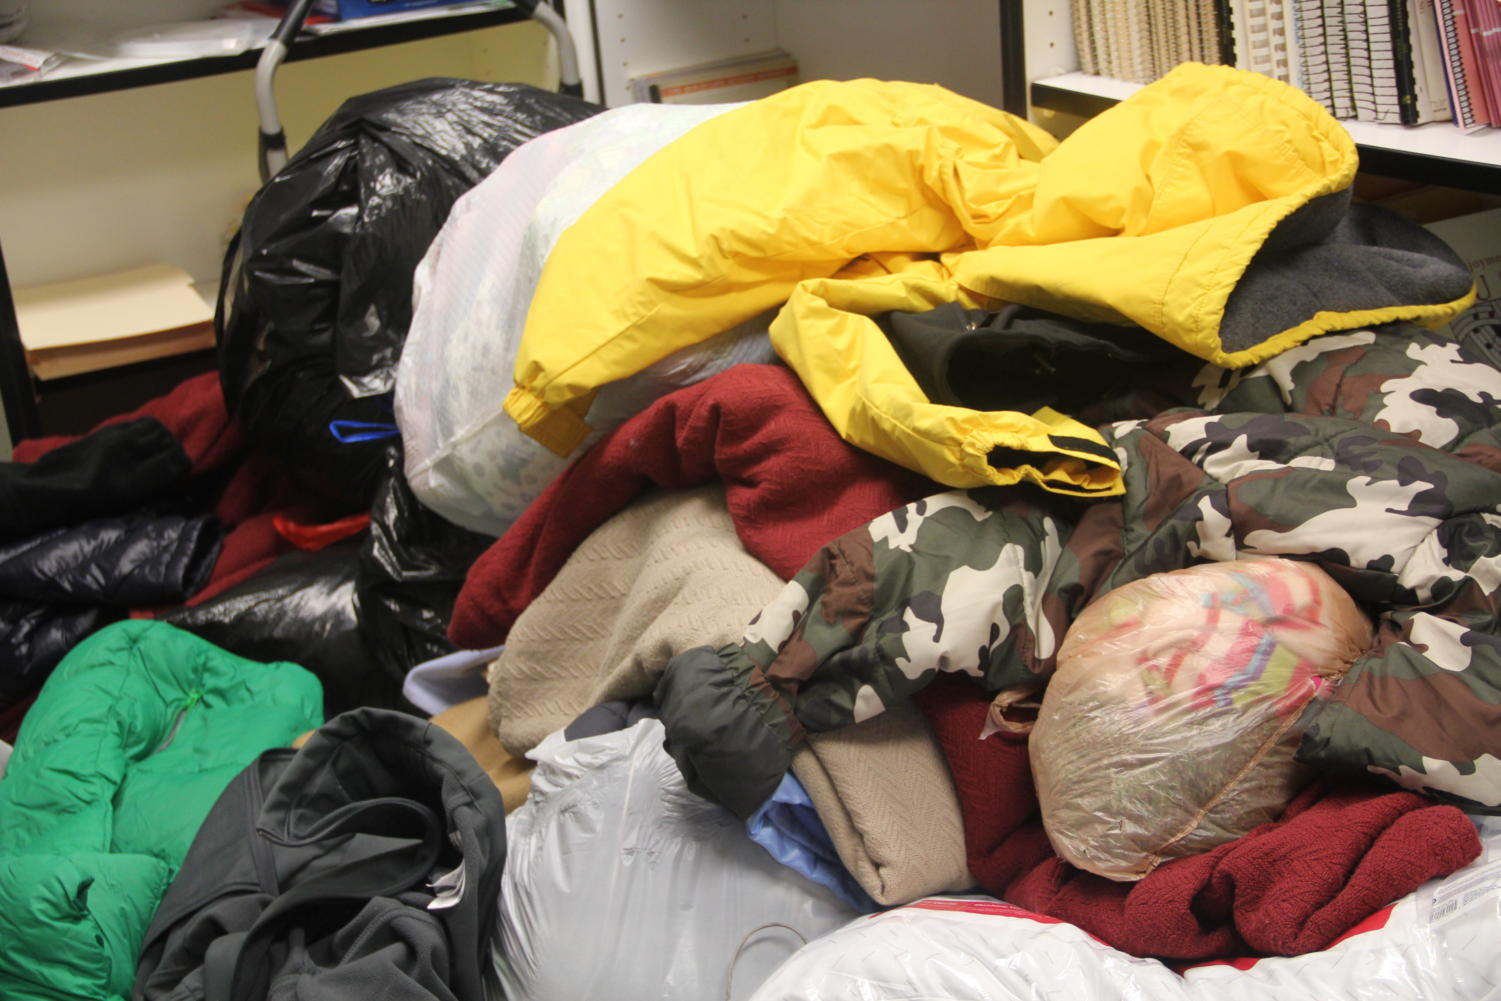 The clothing items donated almost covered the entire floor of the closet where they were held.